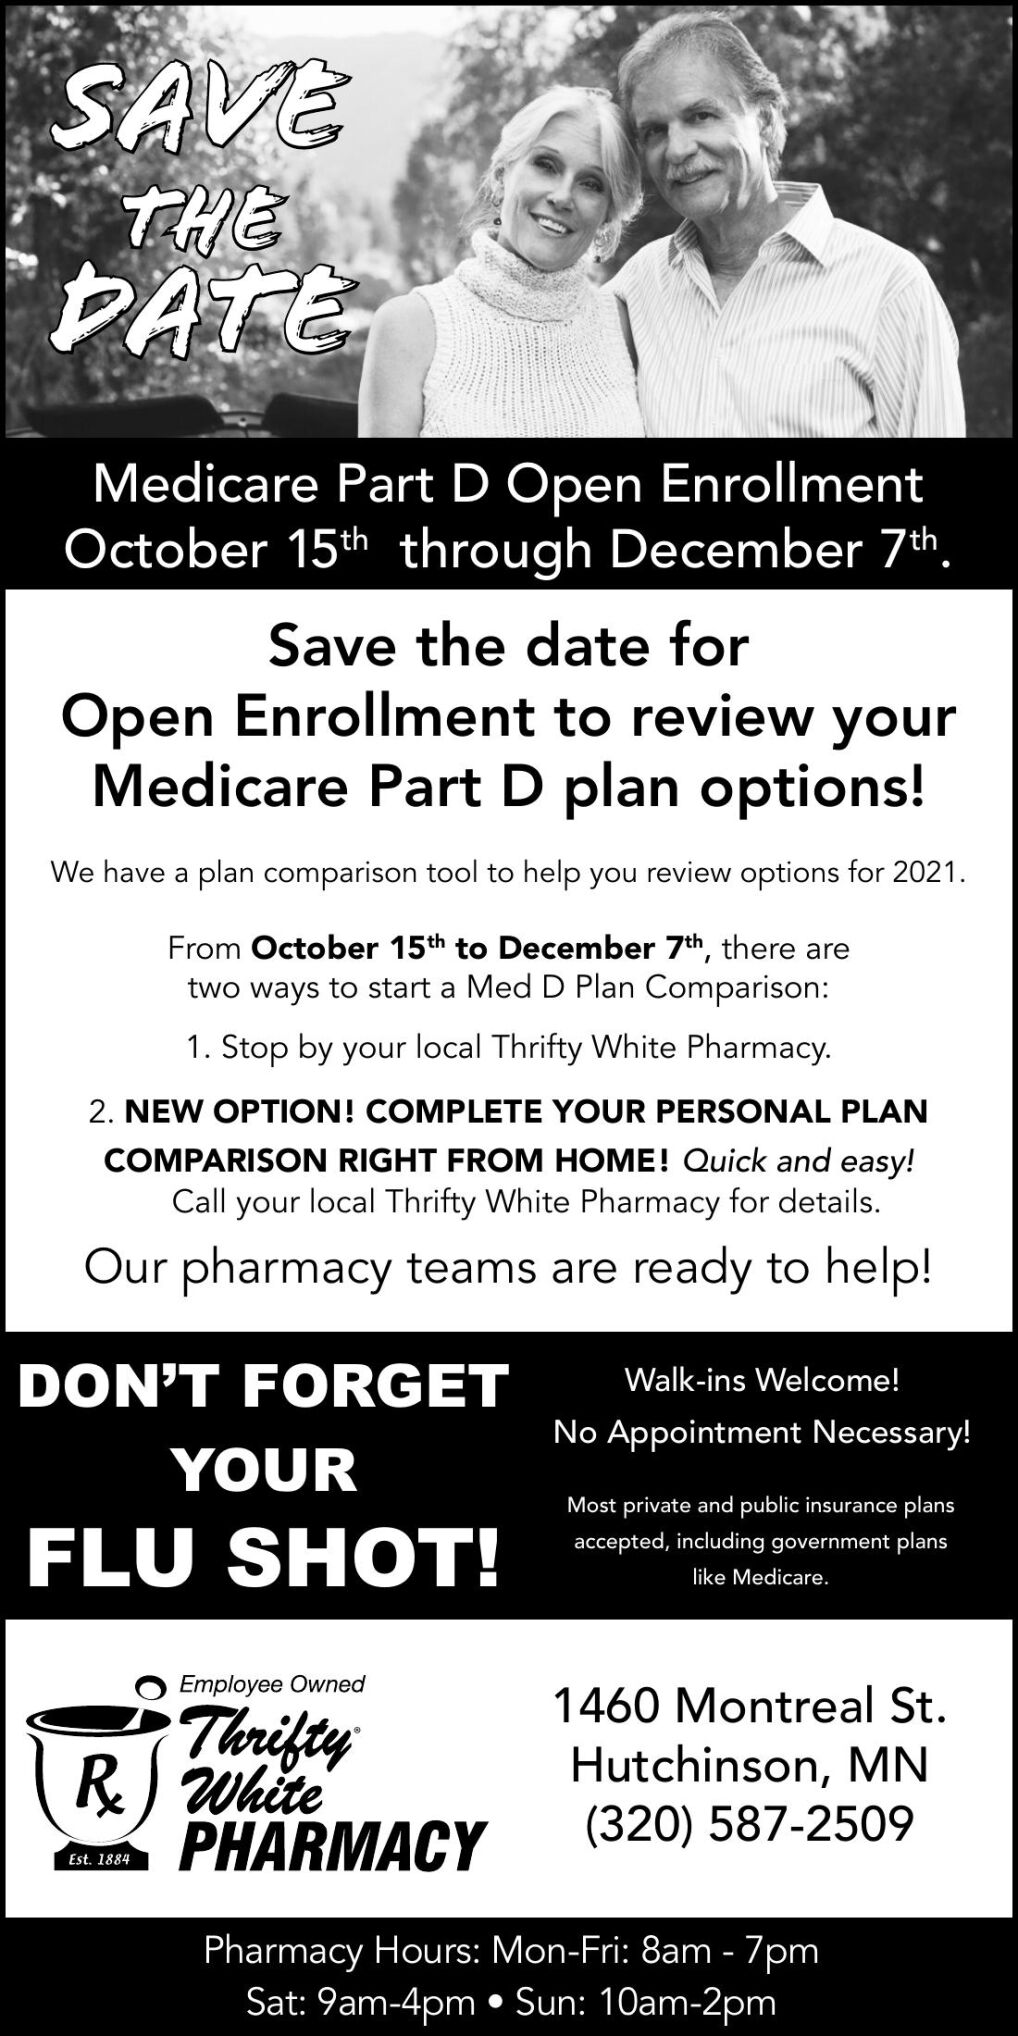 Save the Date Medicare Part D Open